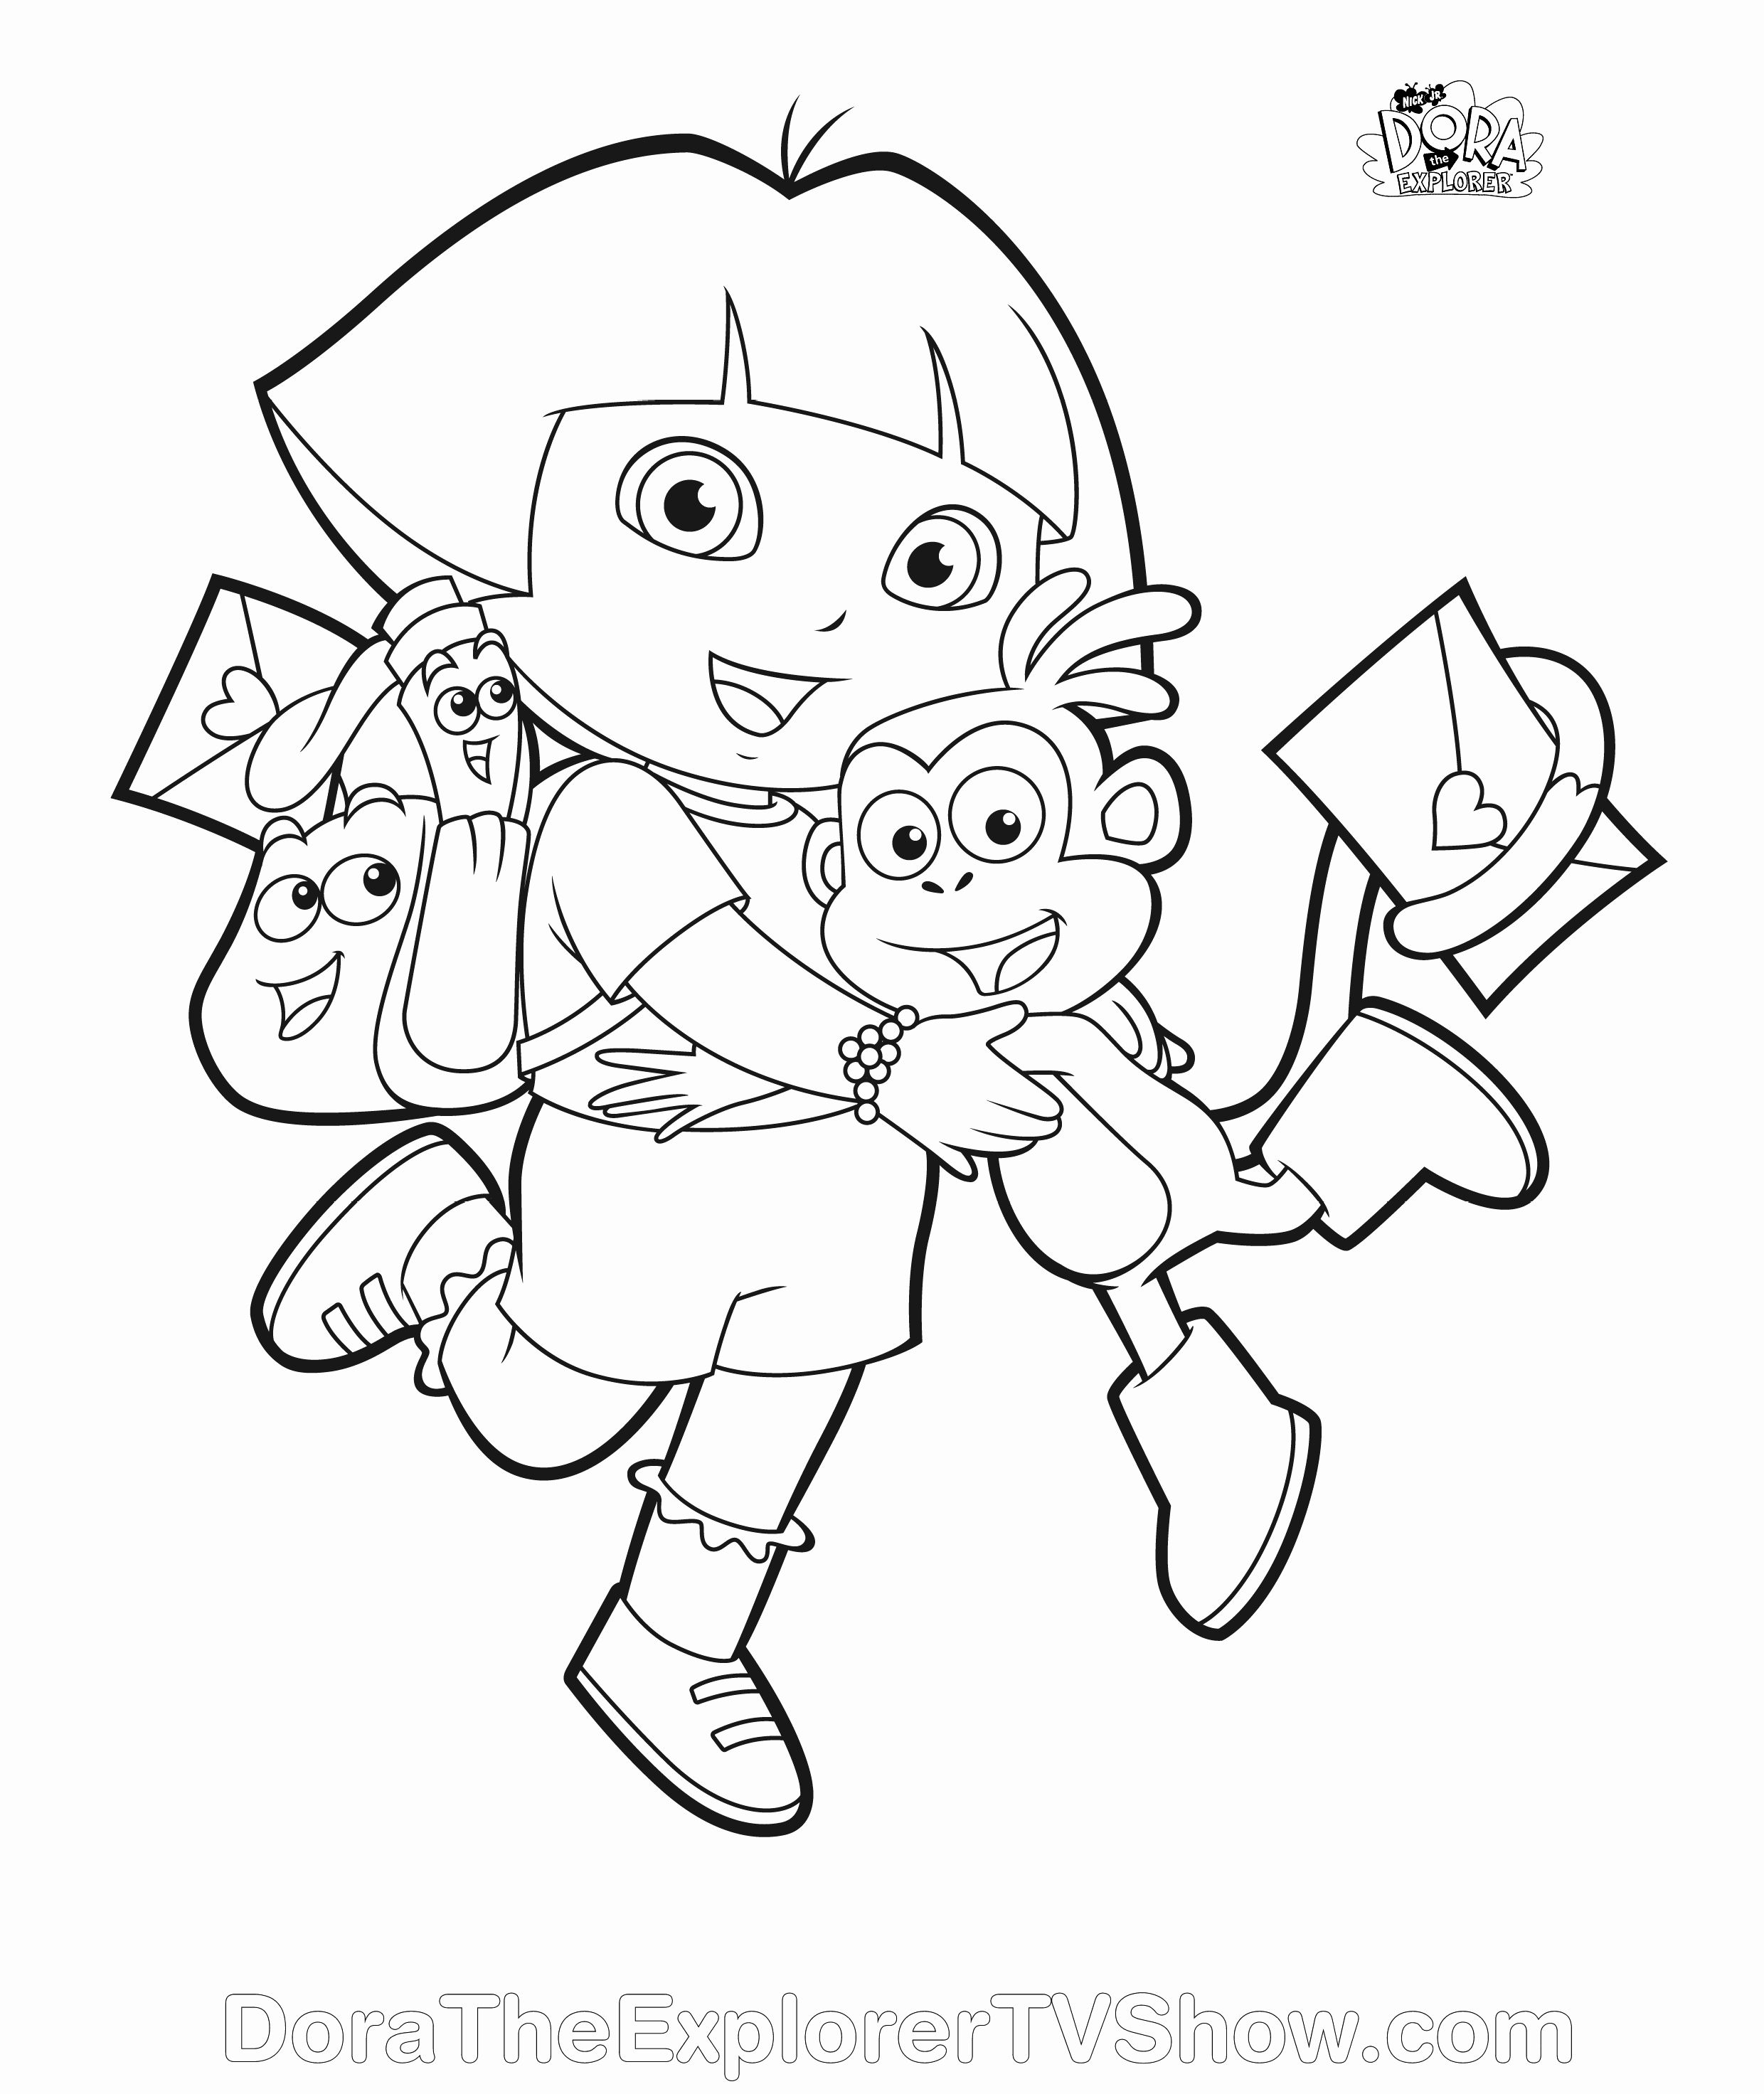 Princess Dora Coloring Pages Unique Dora Animals Castle Coloring Page Download My Little Pony In 2020 Dora Coloring Coloring Pages Dora The Explorer